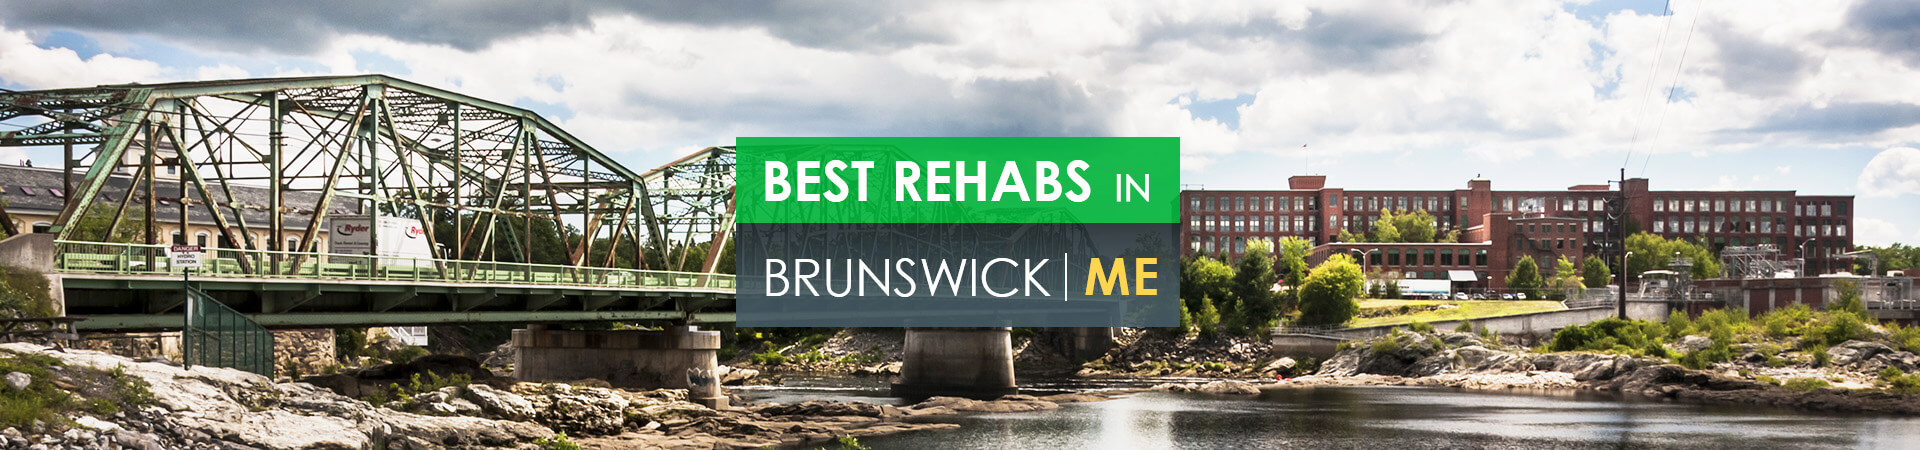 Best rehabs in Brunswick, ME